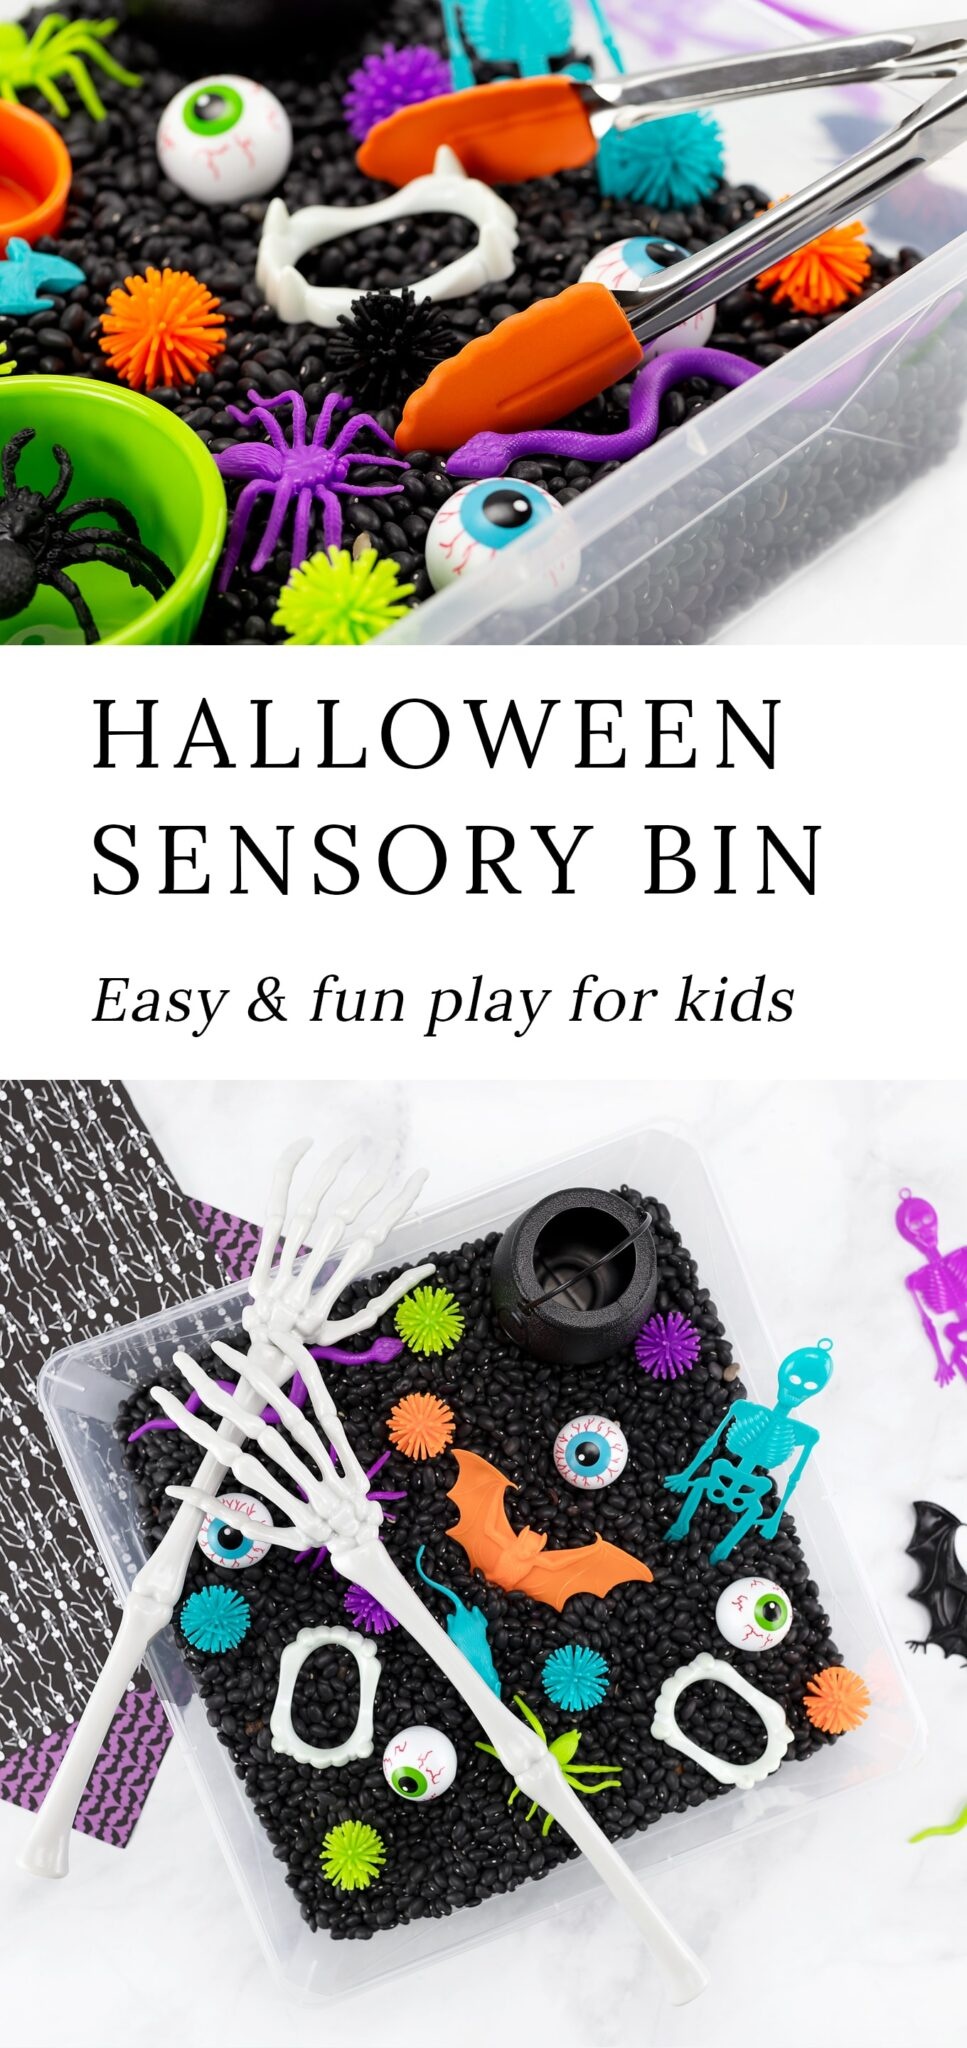 This Halloween Sensory Bin is an engaging, easy, and fun themed sensory play idea for preschoolers, kindergartners, and older kids! Make it on your own with inexpensive materials from your local grocery store or neighborhood dollar store. #halloween #sensorybin #preschool via @firefliesandmudpies